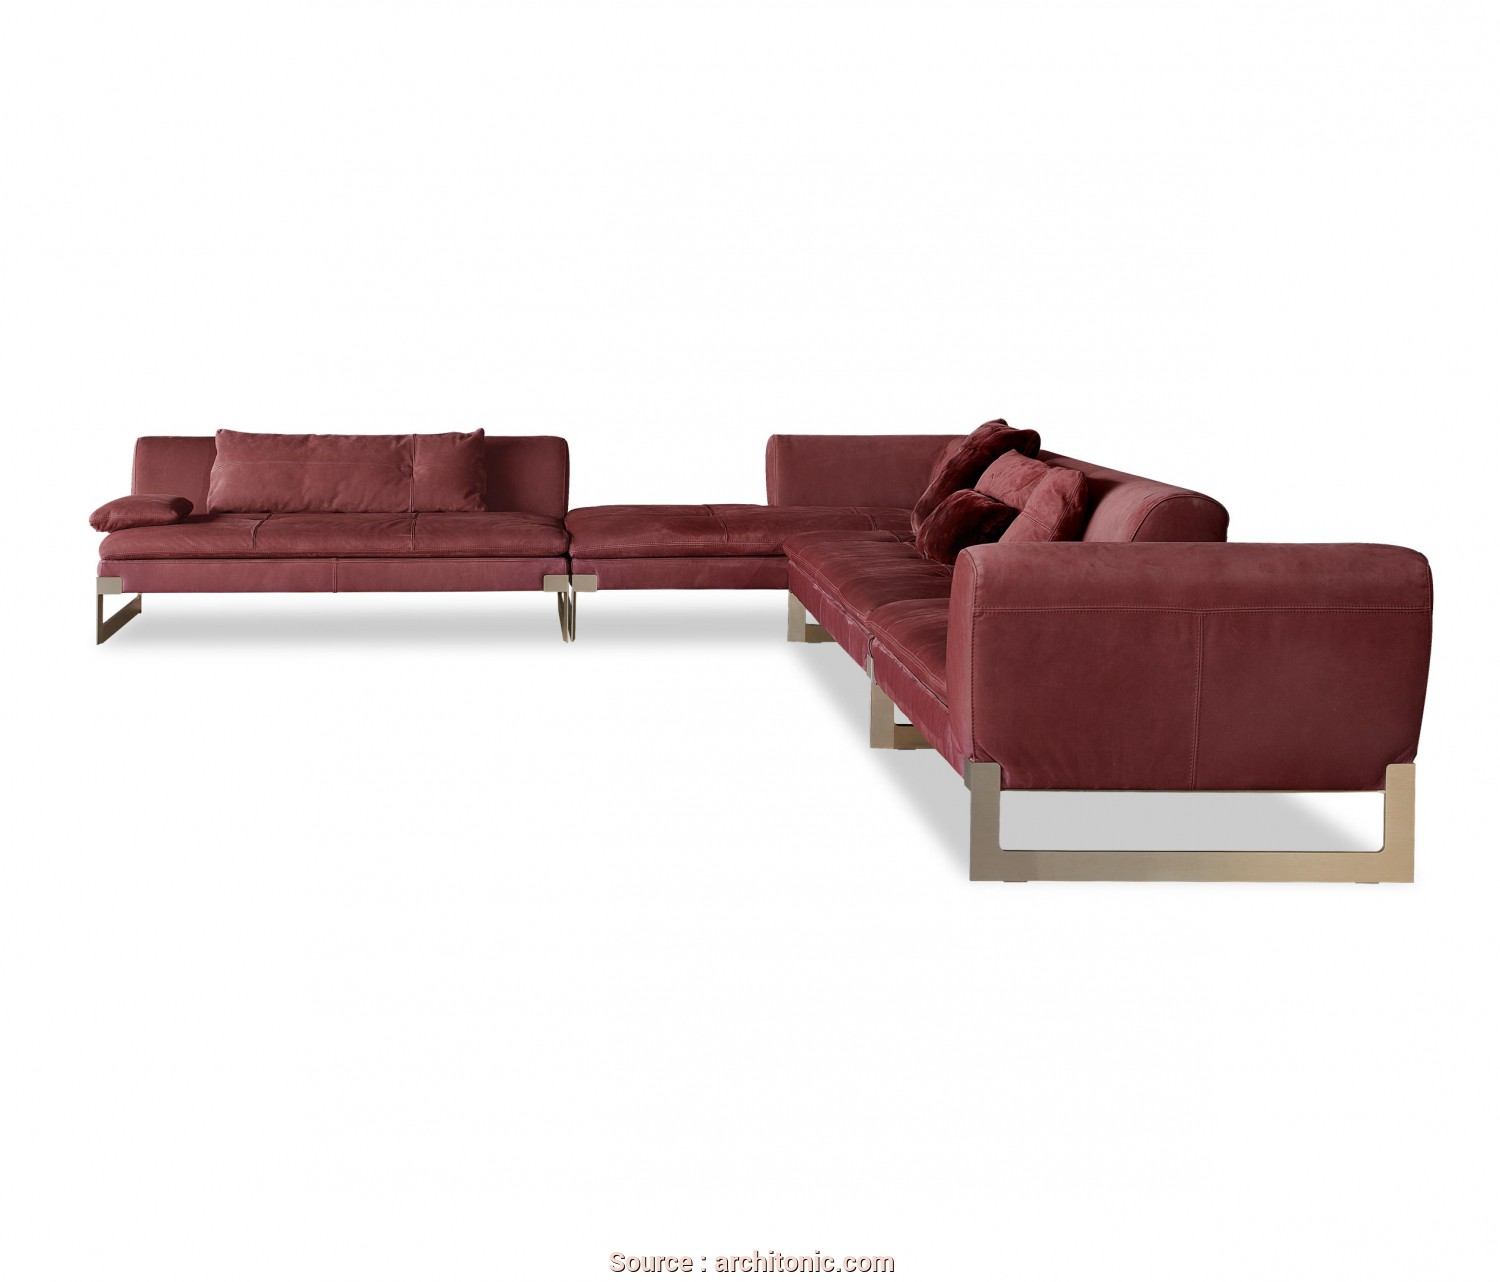 Divano Baxter Dwg, Delizioso VIKTOR, Sofas From Baxter, Architonic